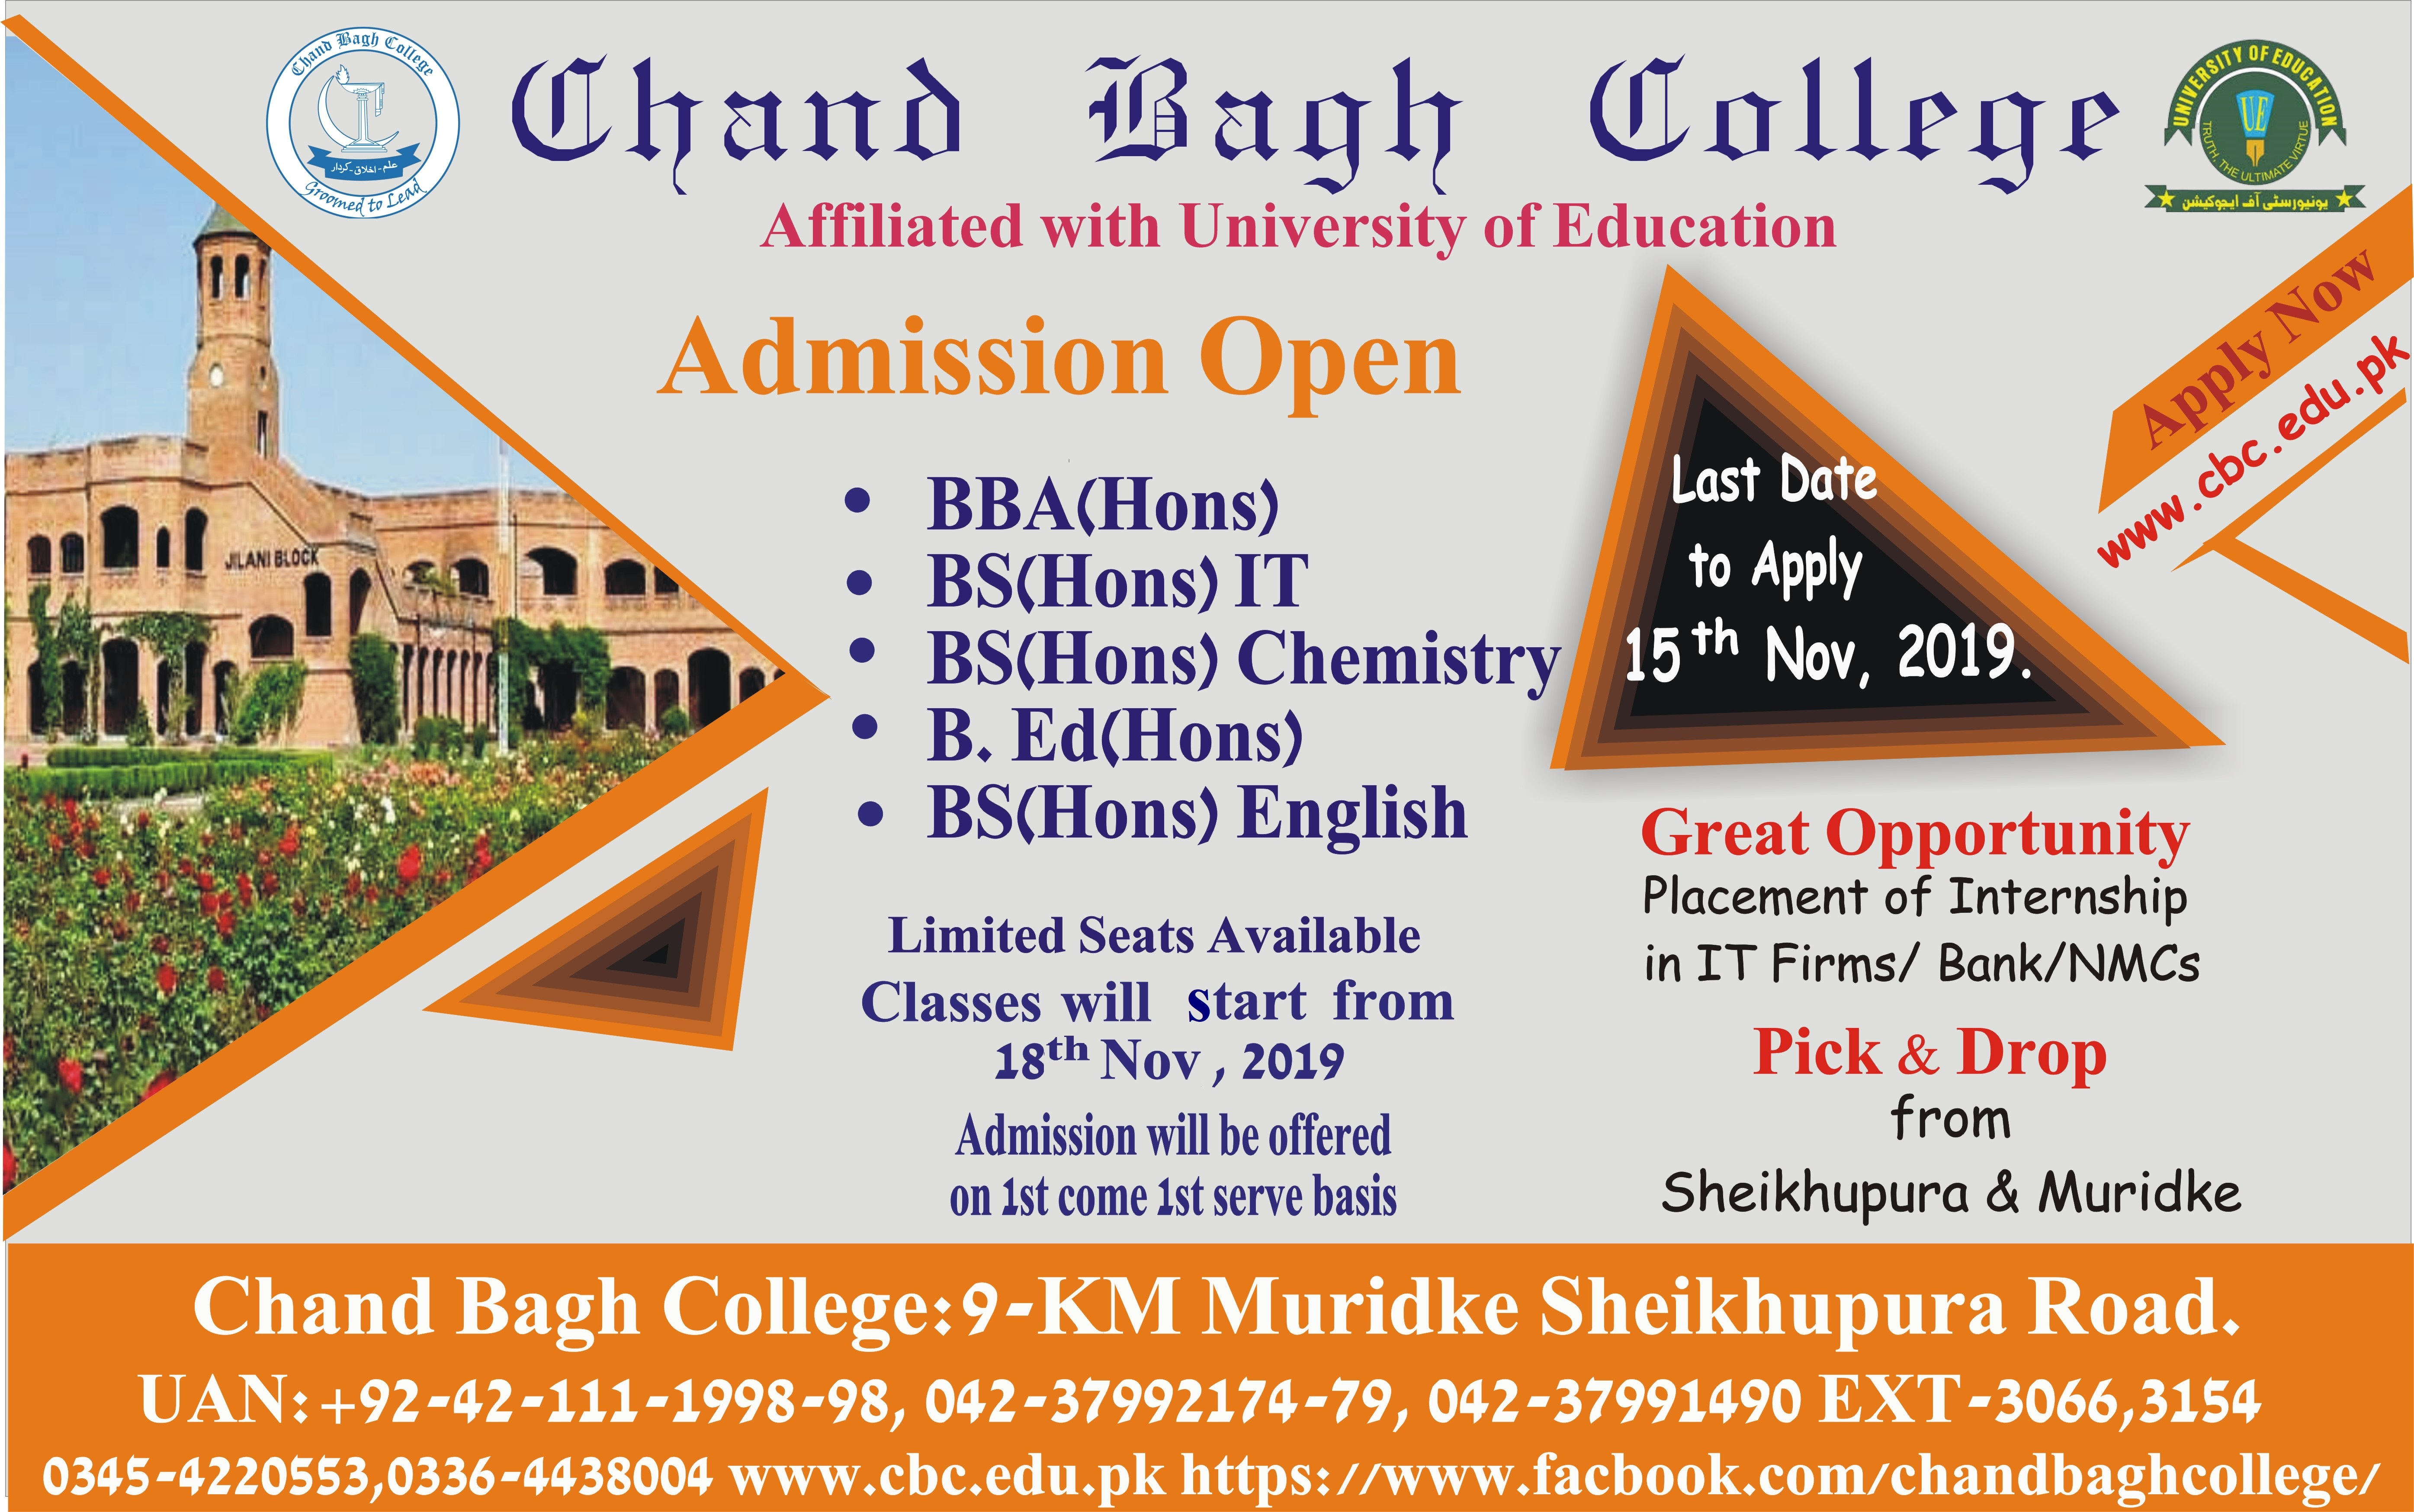 Chand Bagh College Muridke Admission 2019 in BS, BBA & BEd (Hons), Apply Online